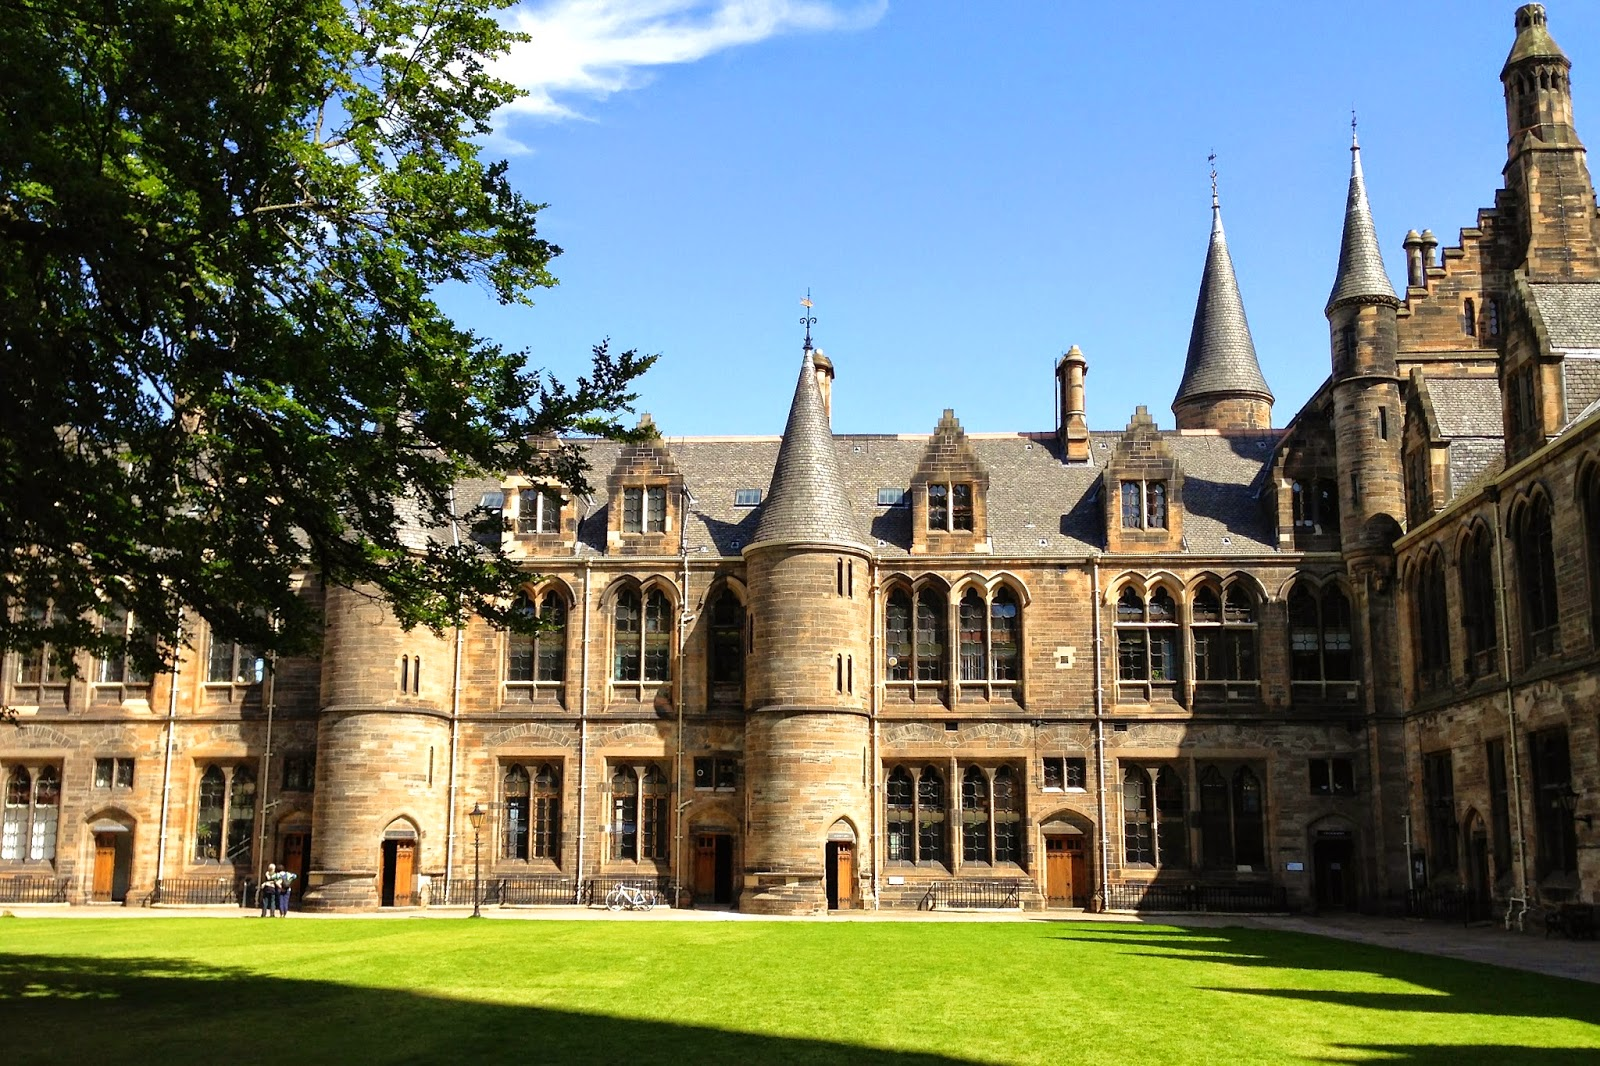 Quad on main campus of University of Glasgow